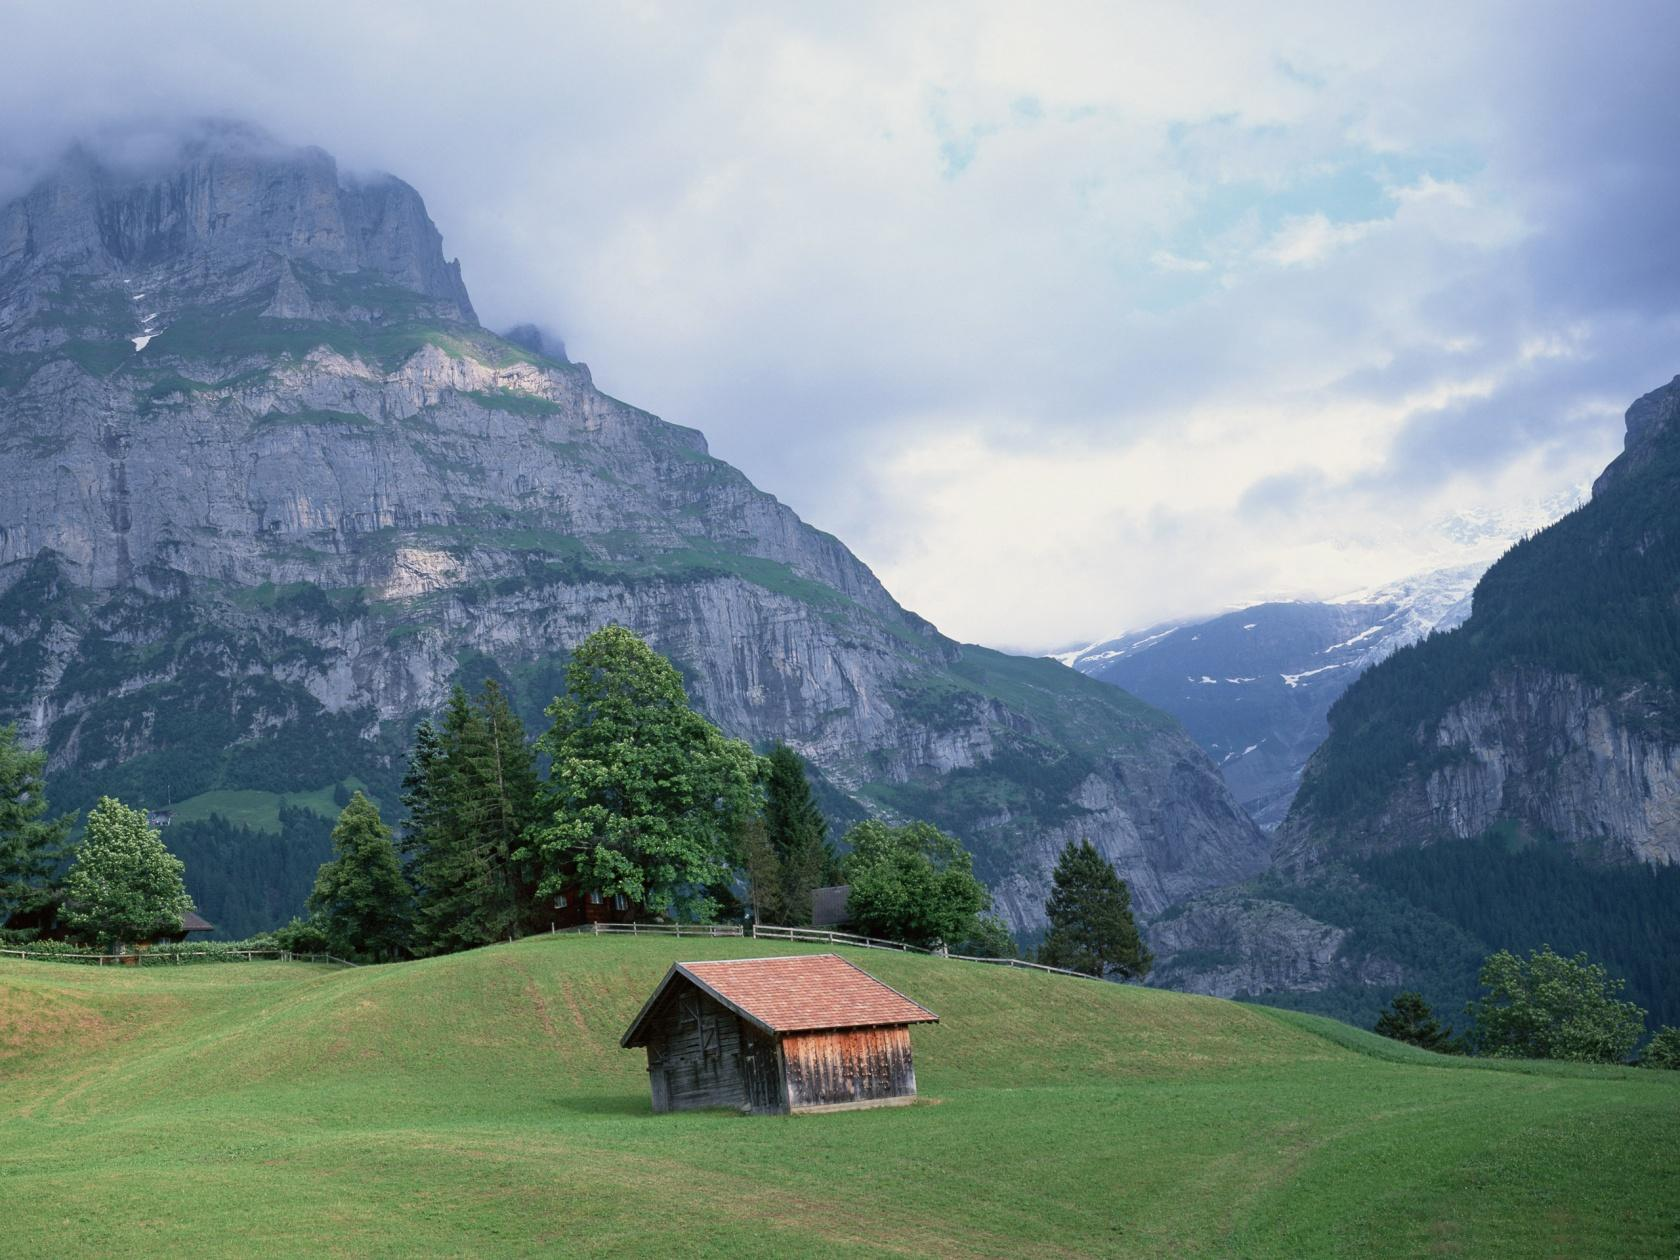 barn in the mountains